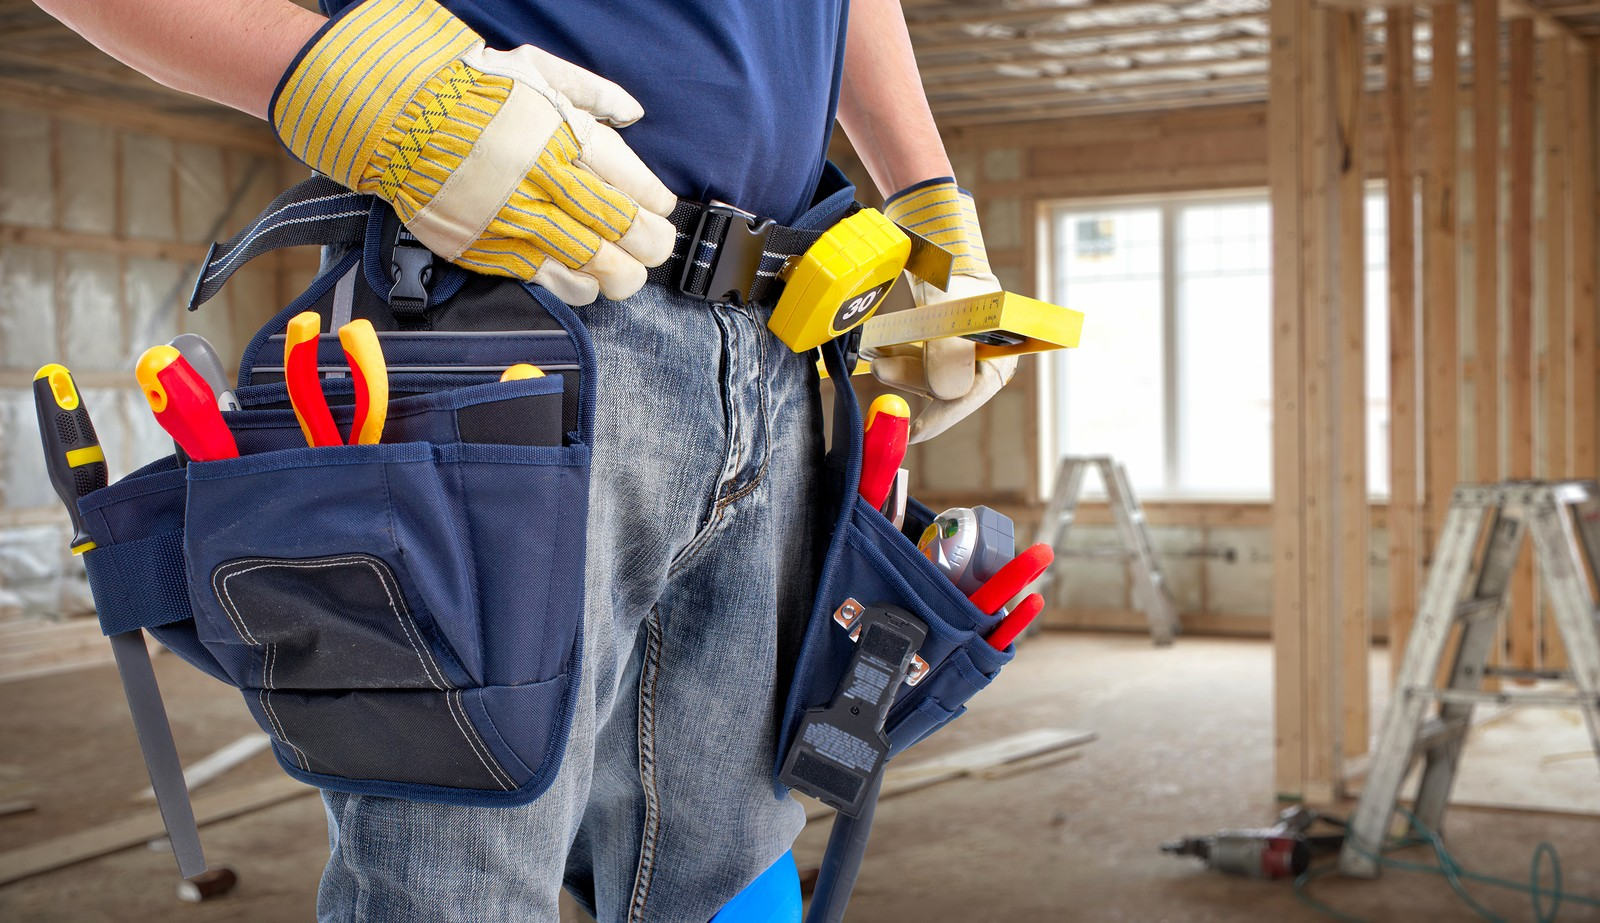 Worker with construction tools. House renovation background.